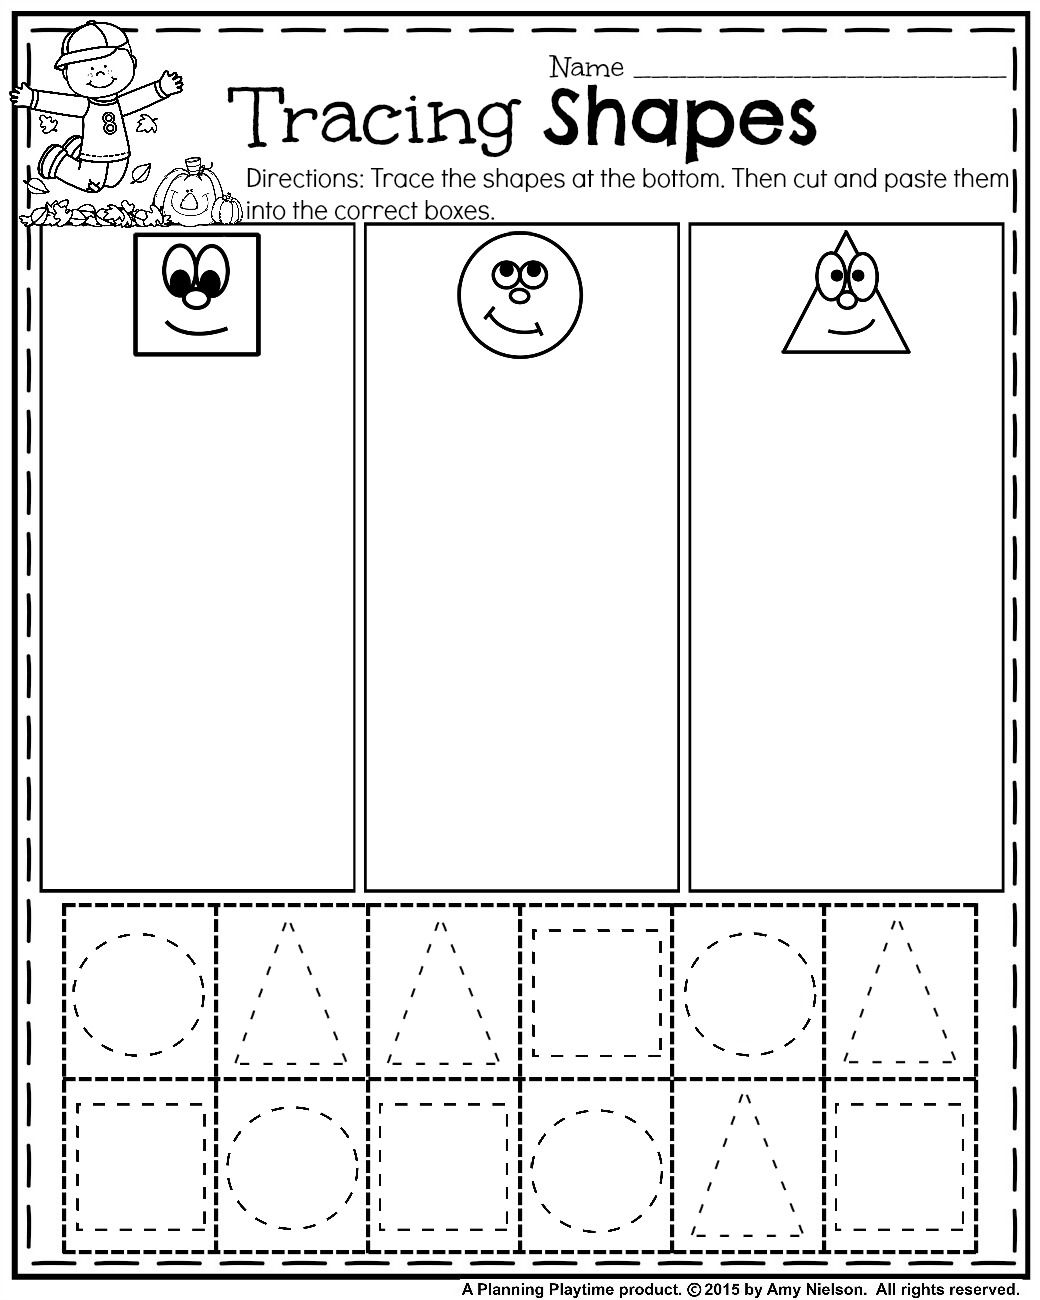 October Preschool Worksheets | sheets | Pinterest ...